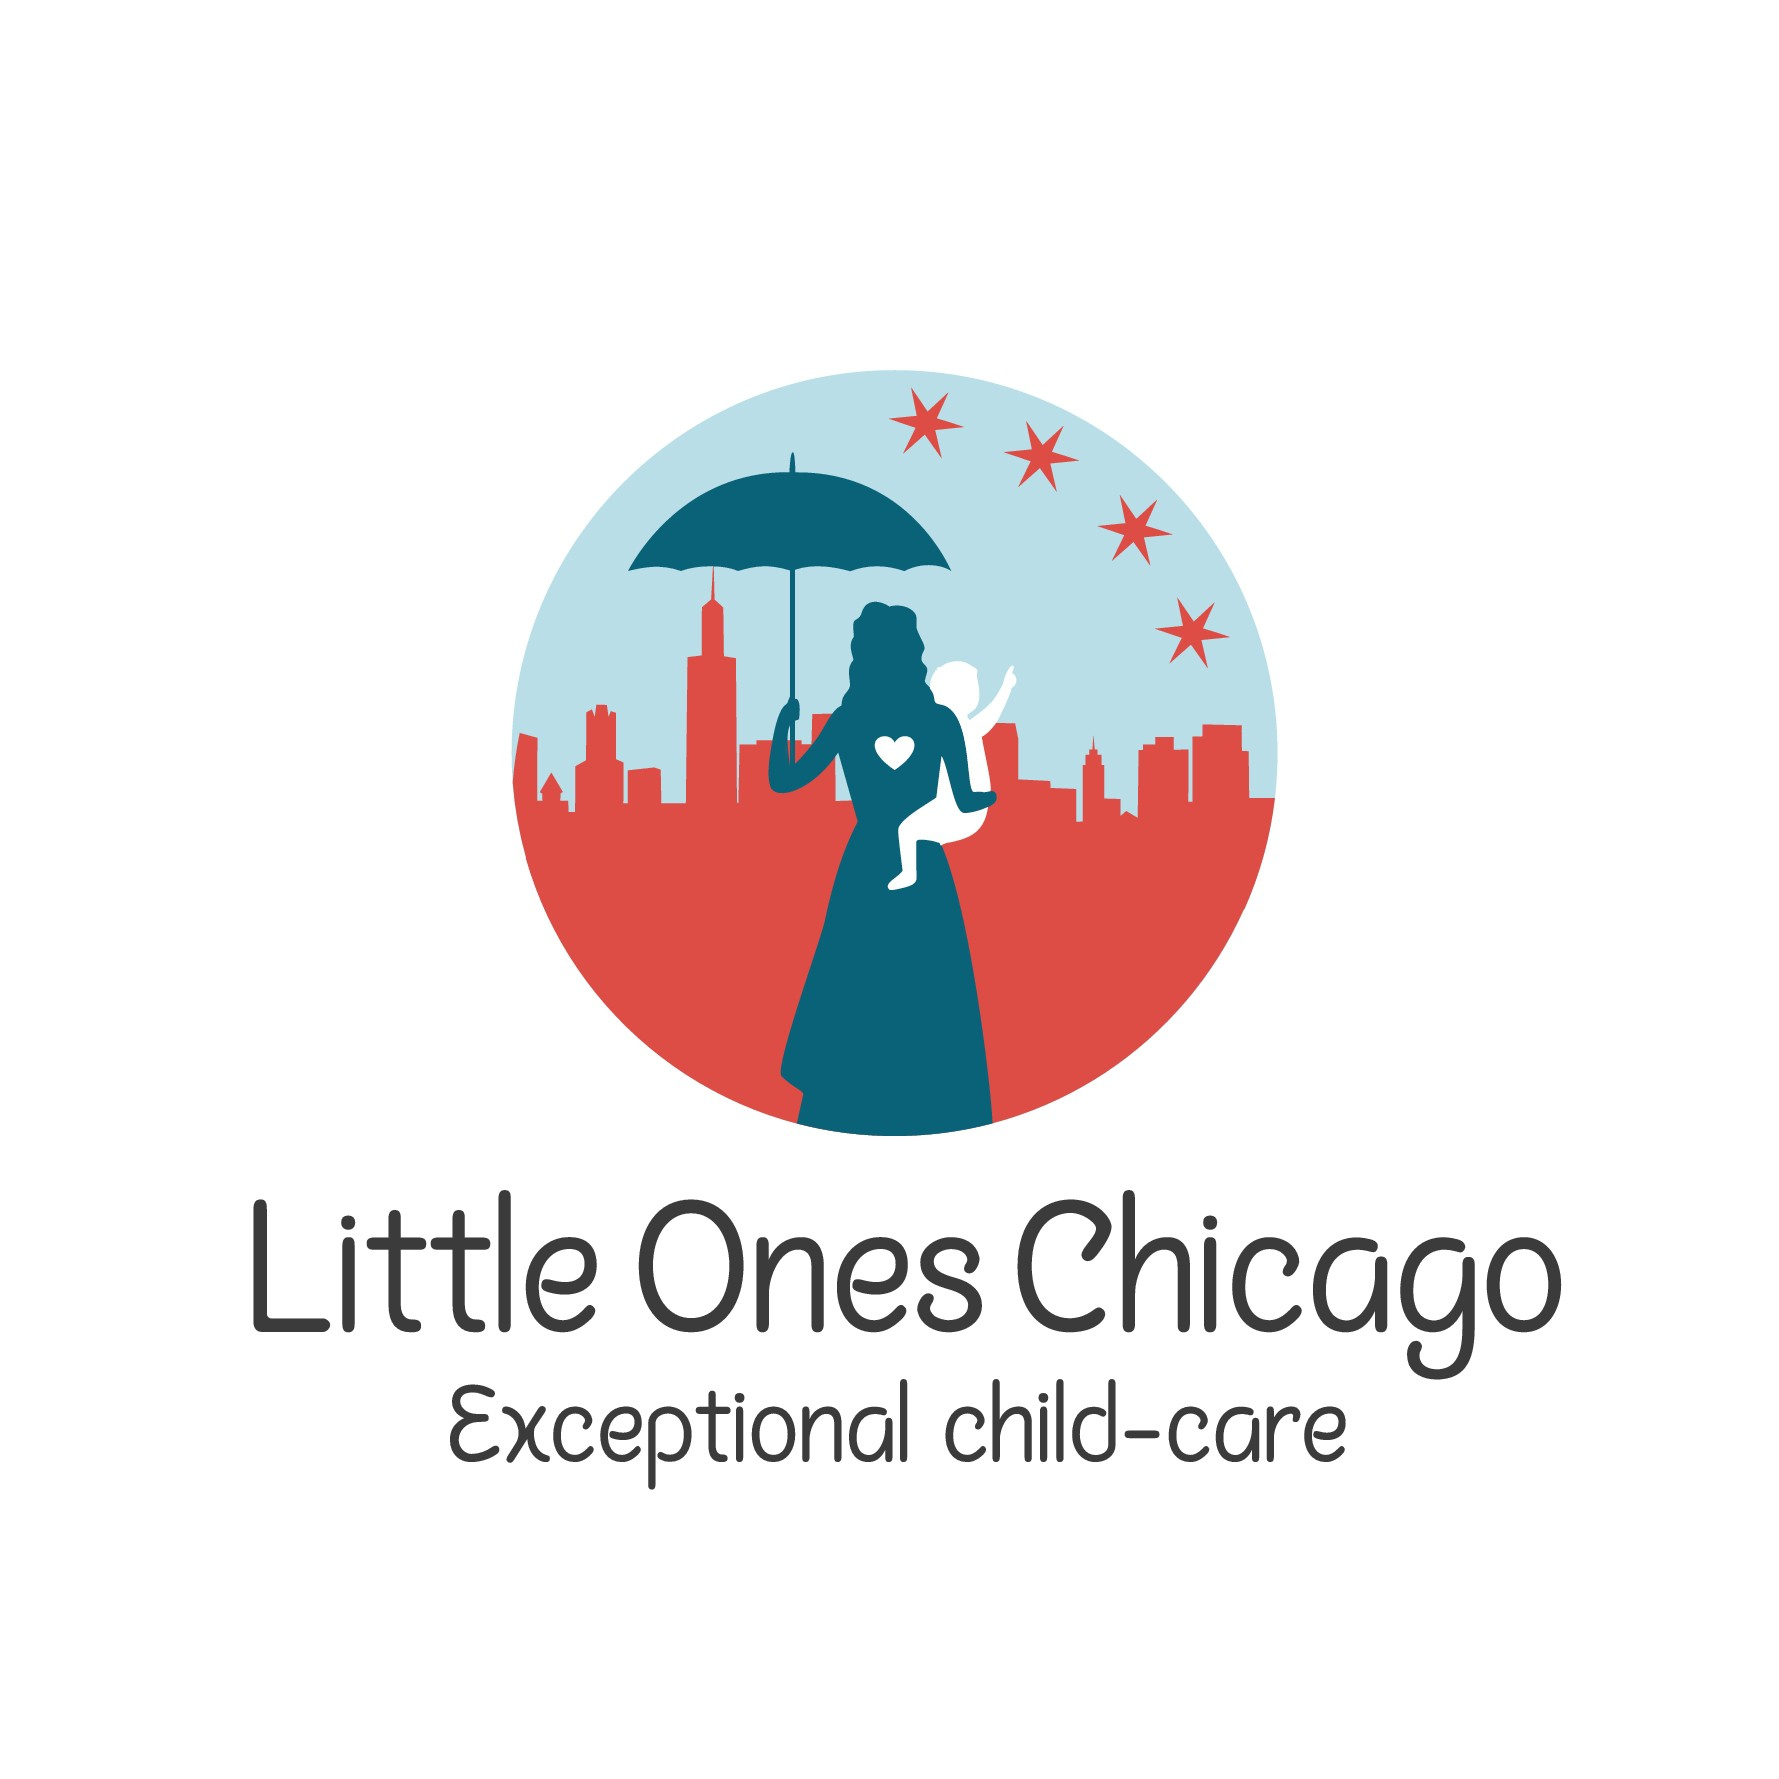 Design a logo for Little Ones Chicago appealing to parents of small children